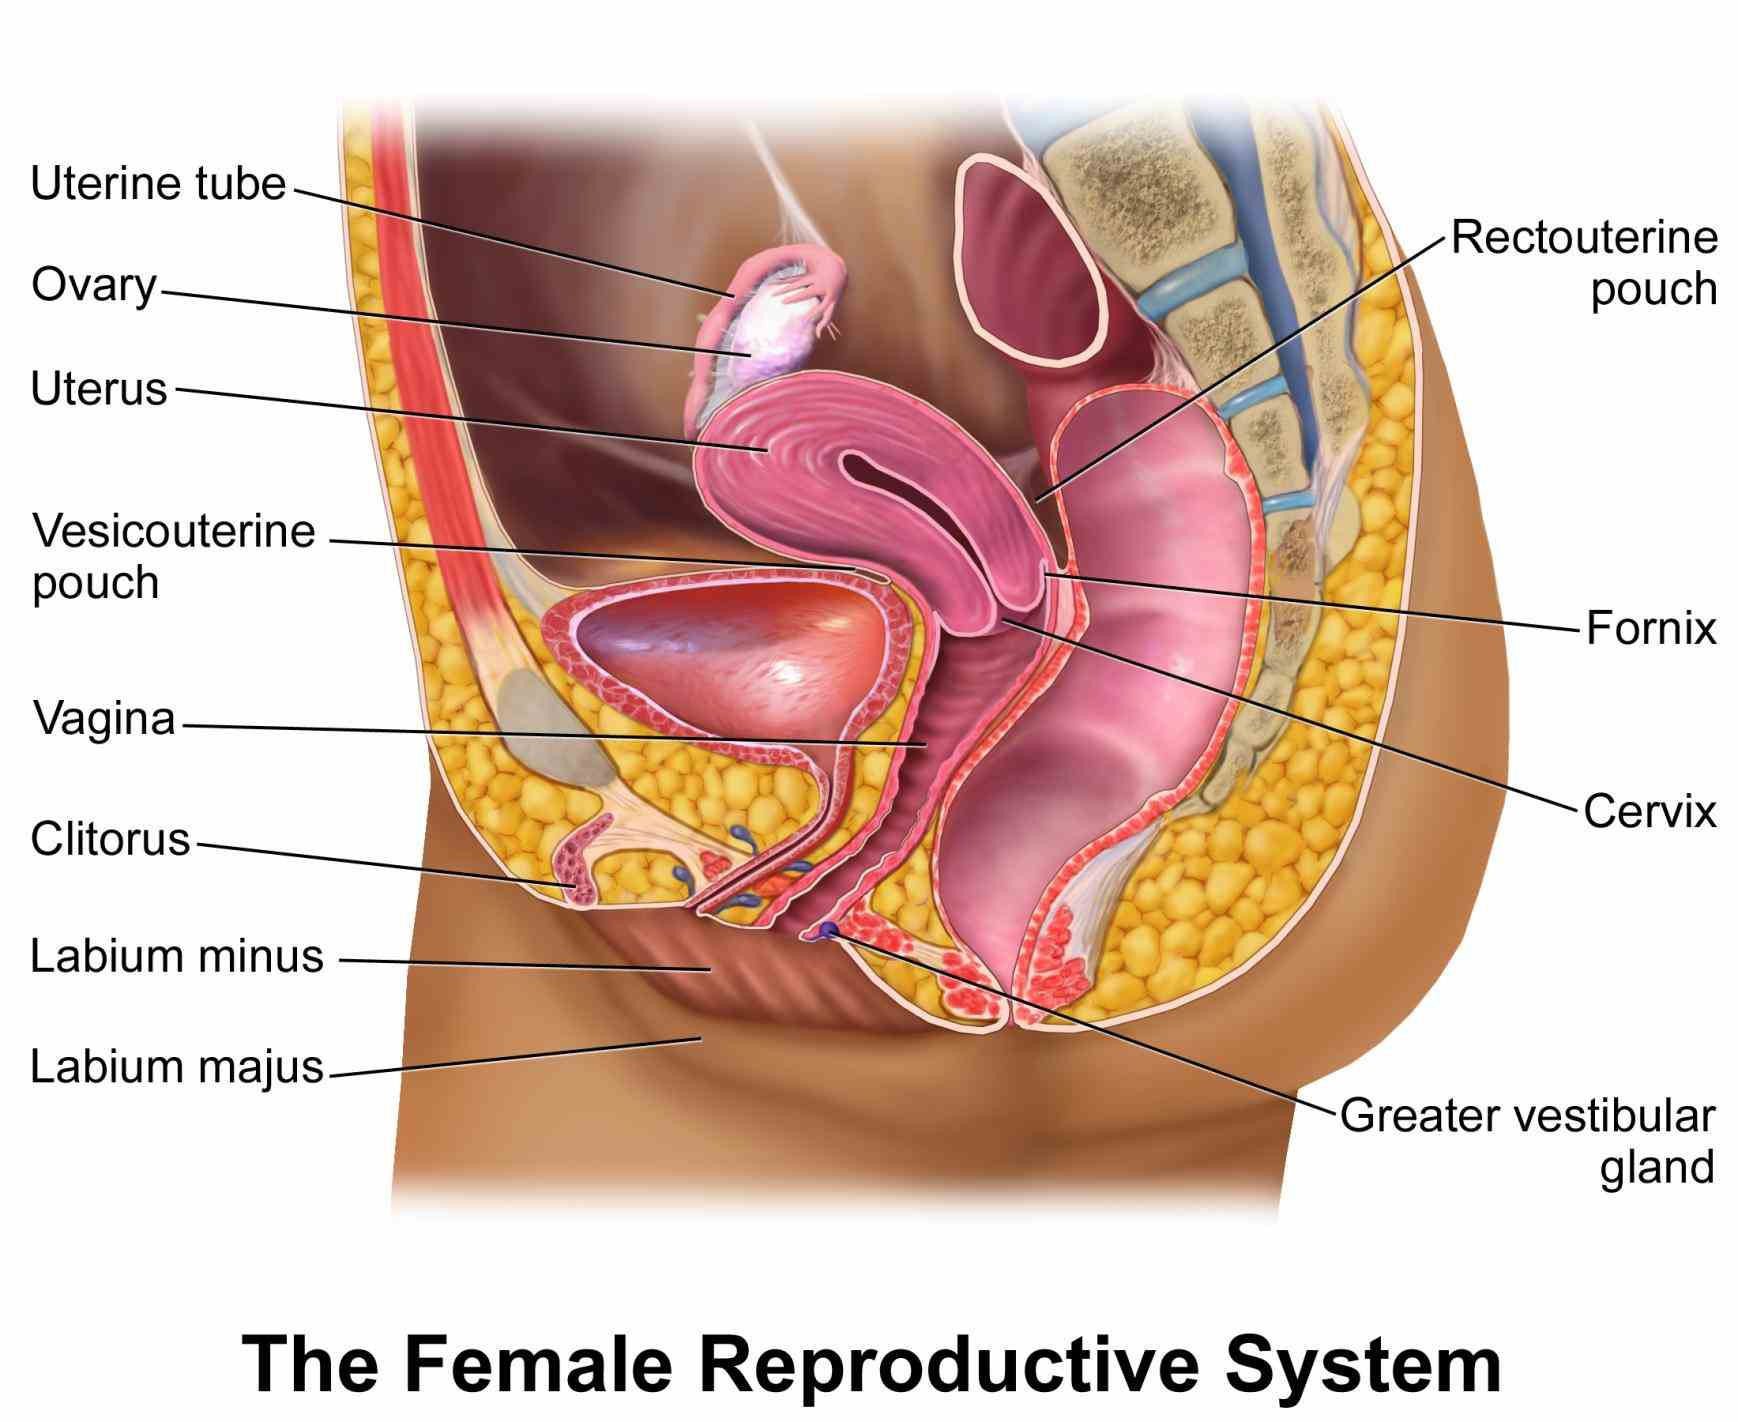 Anatomy Of The Female Reproductive System Pictures Wallpapers